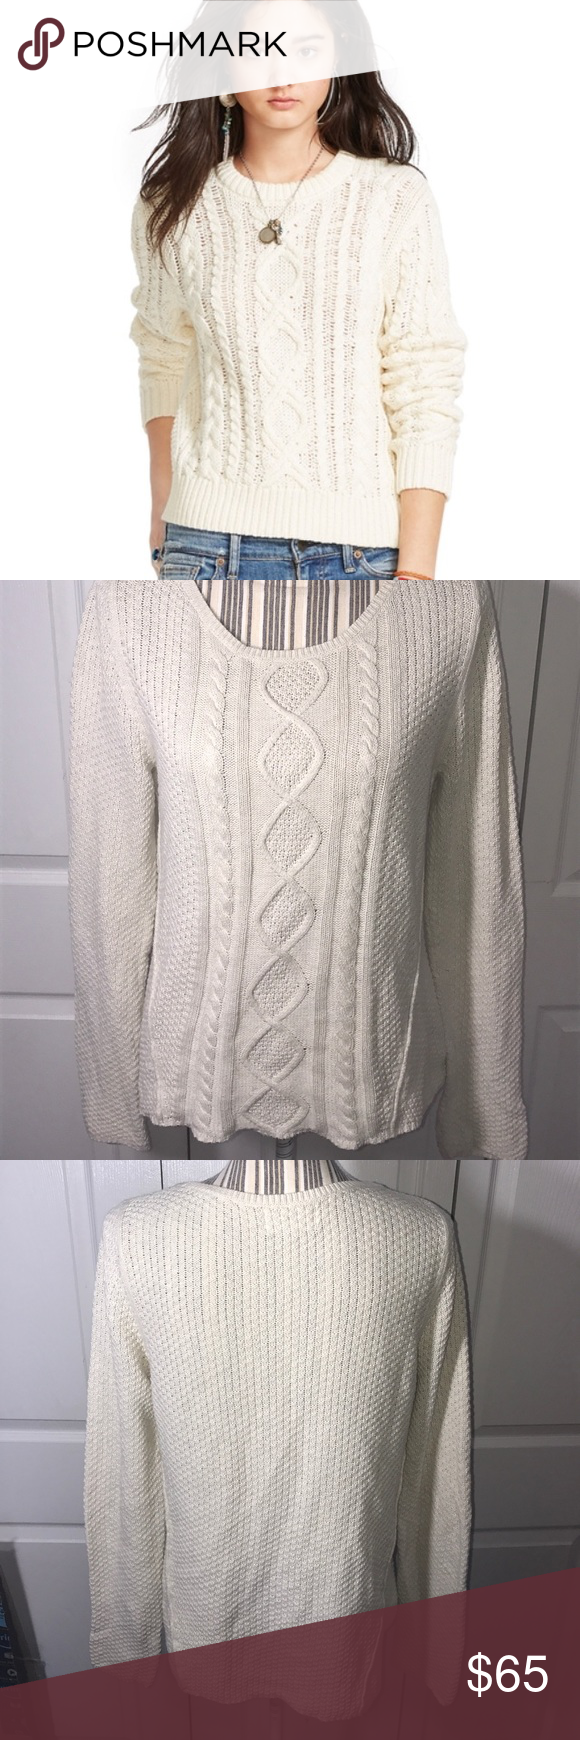 Ralph Lauren [Denim & Supply] Cable Knit Sweater Sz Medium / 18 ...